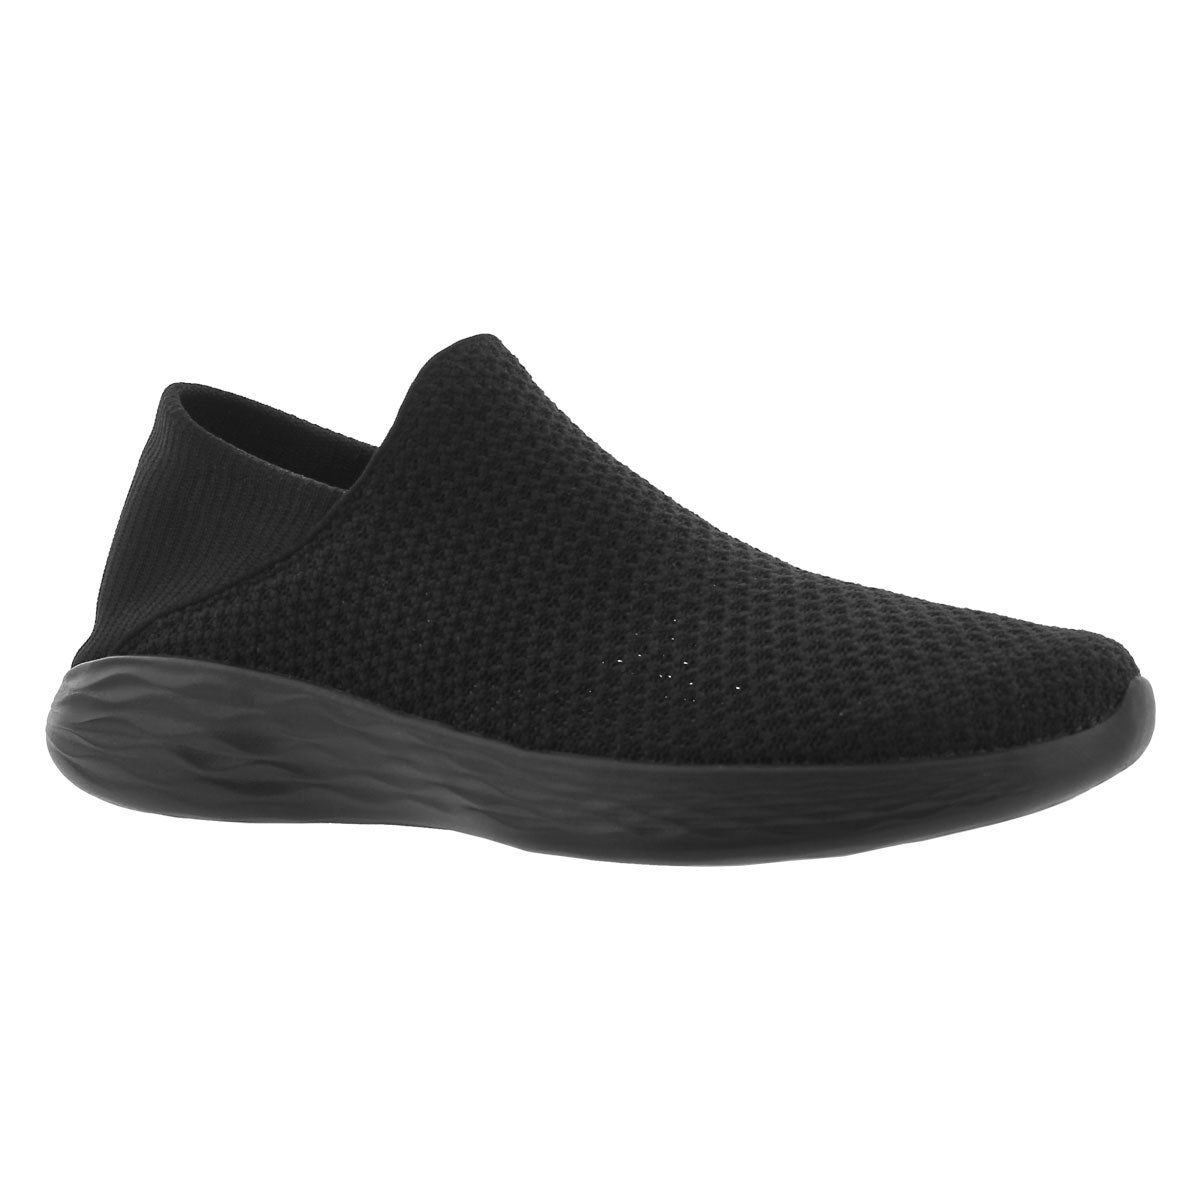 Women's YOU MOVEMENT black slip on walking shoes